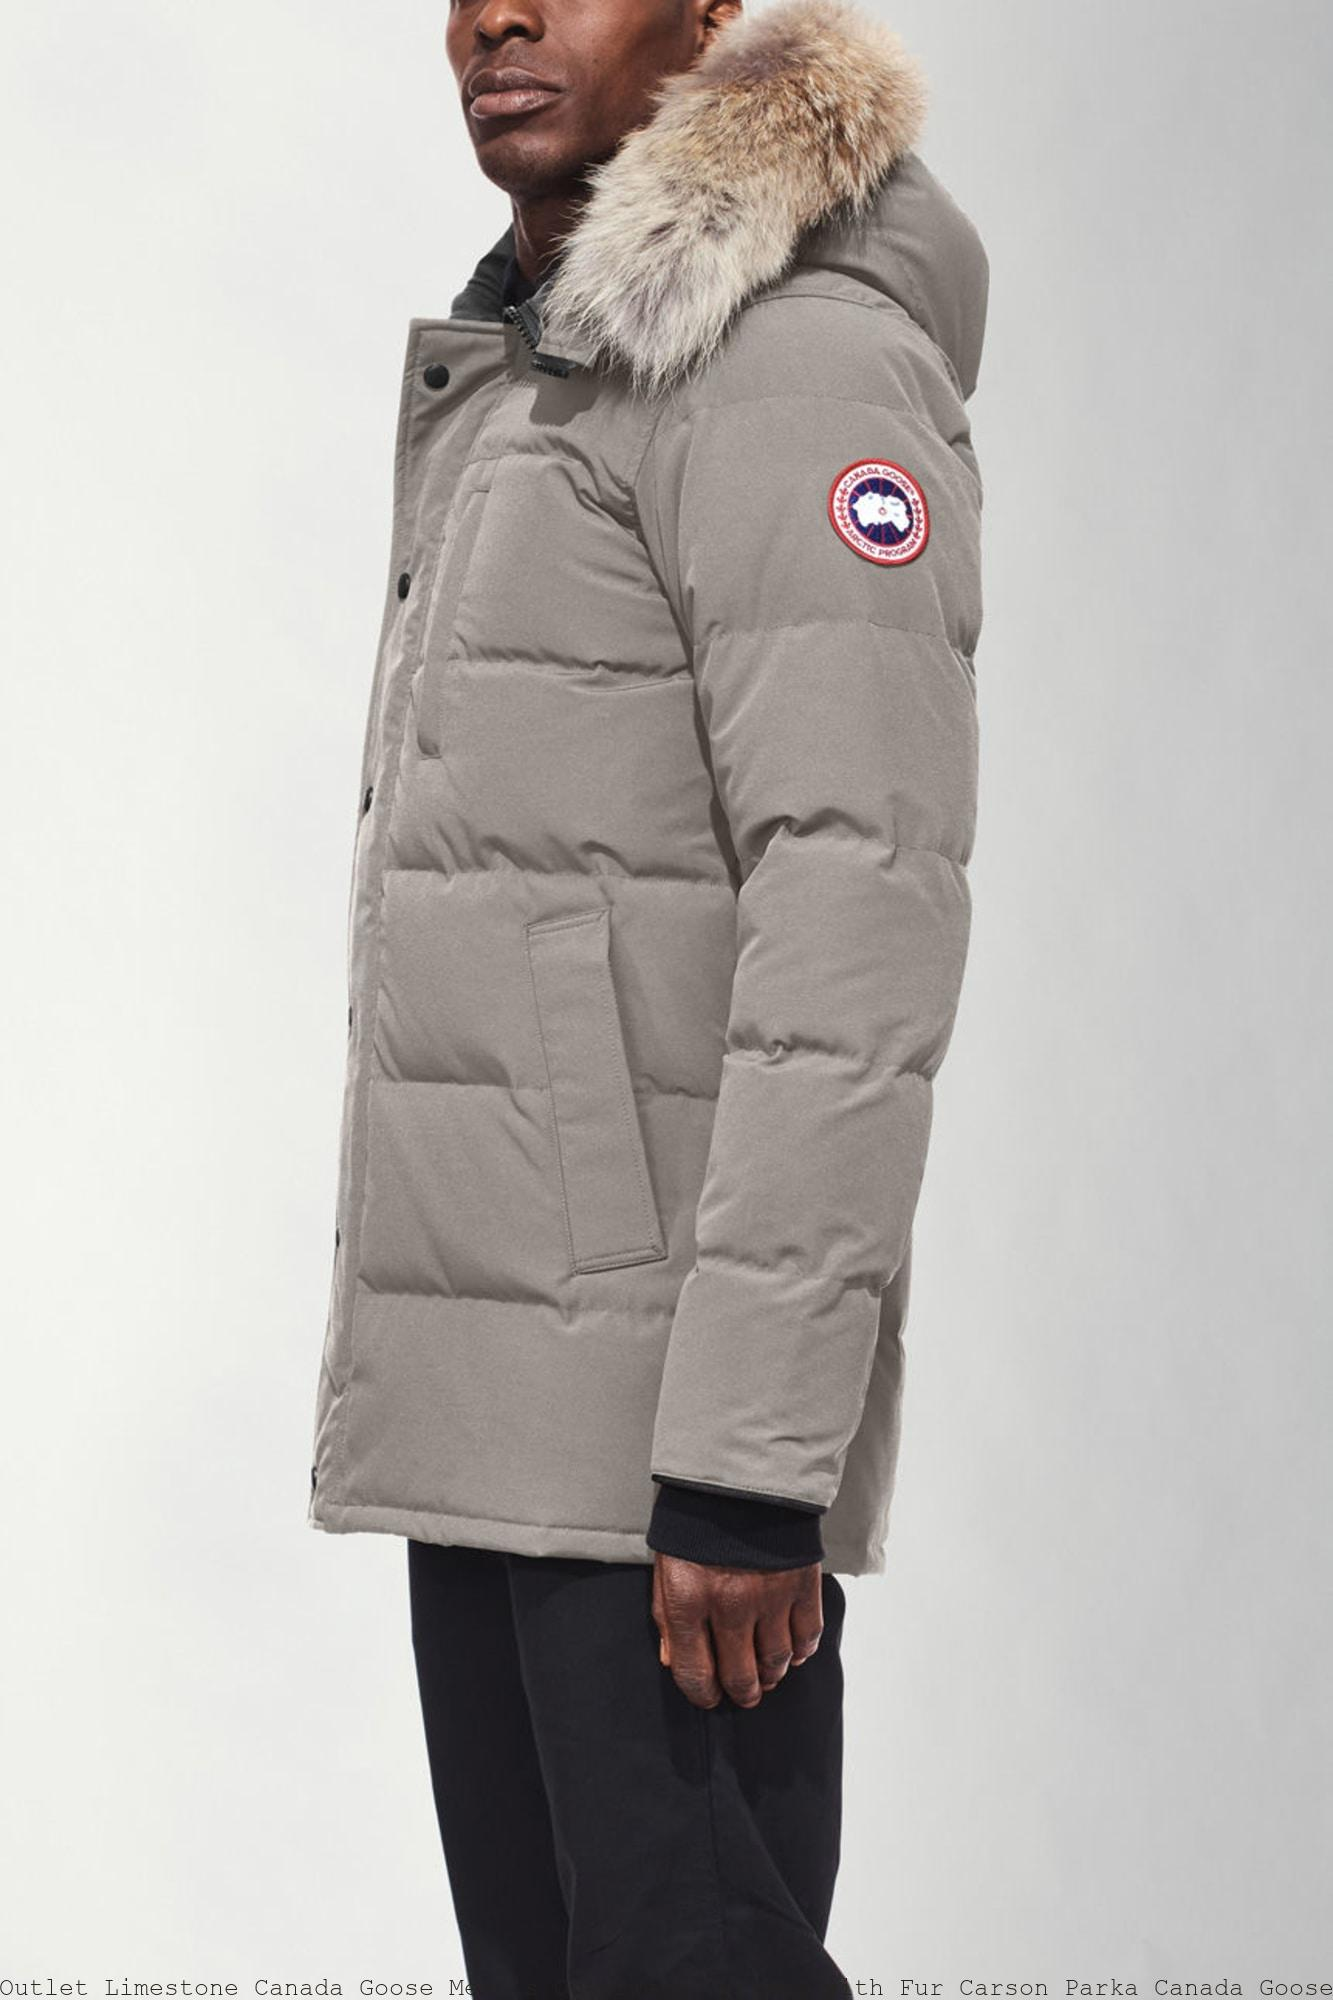 Outlet Limestone Canada Goose Men's Outerwear Jackets with Fur Carson Parka Canada Goose Emory Parka Uk 3805M